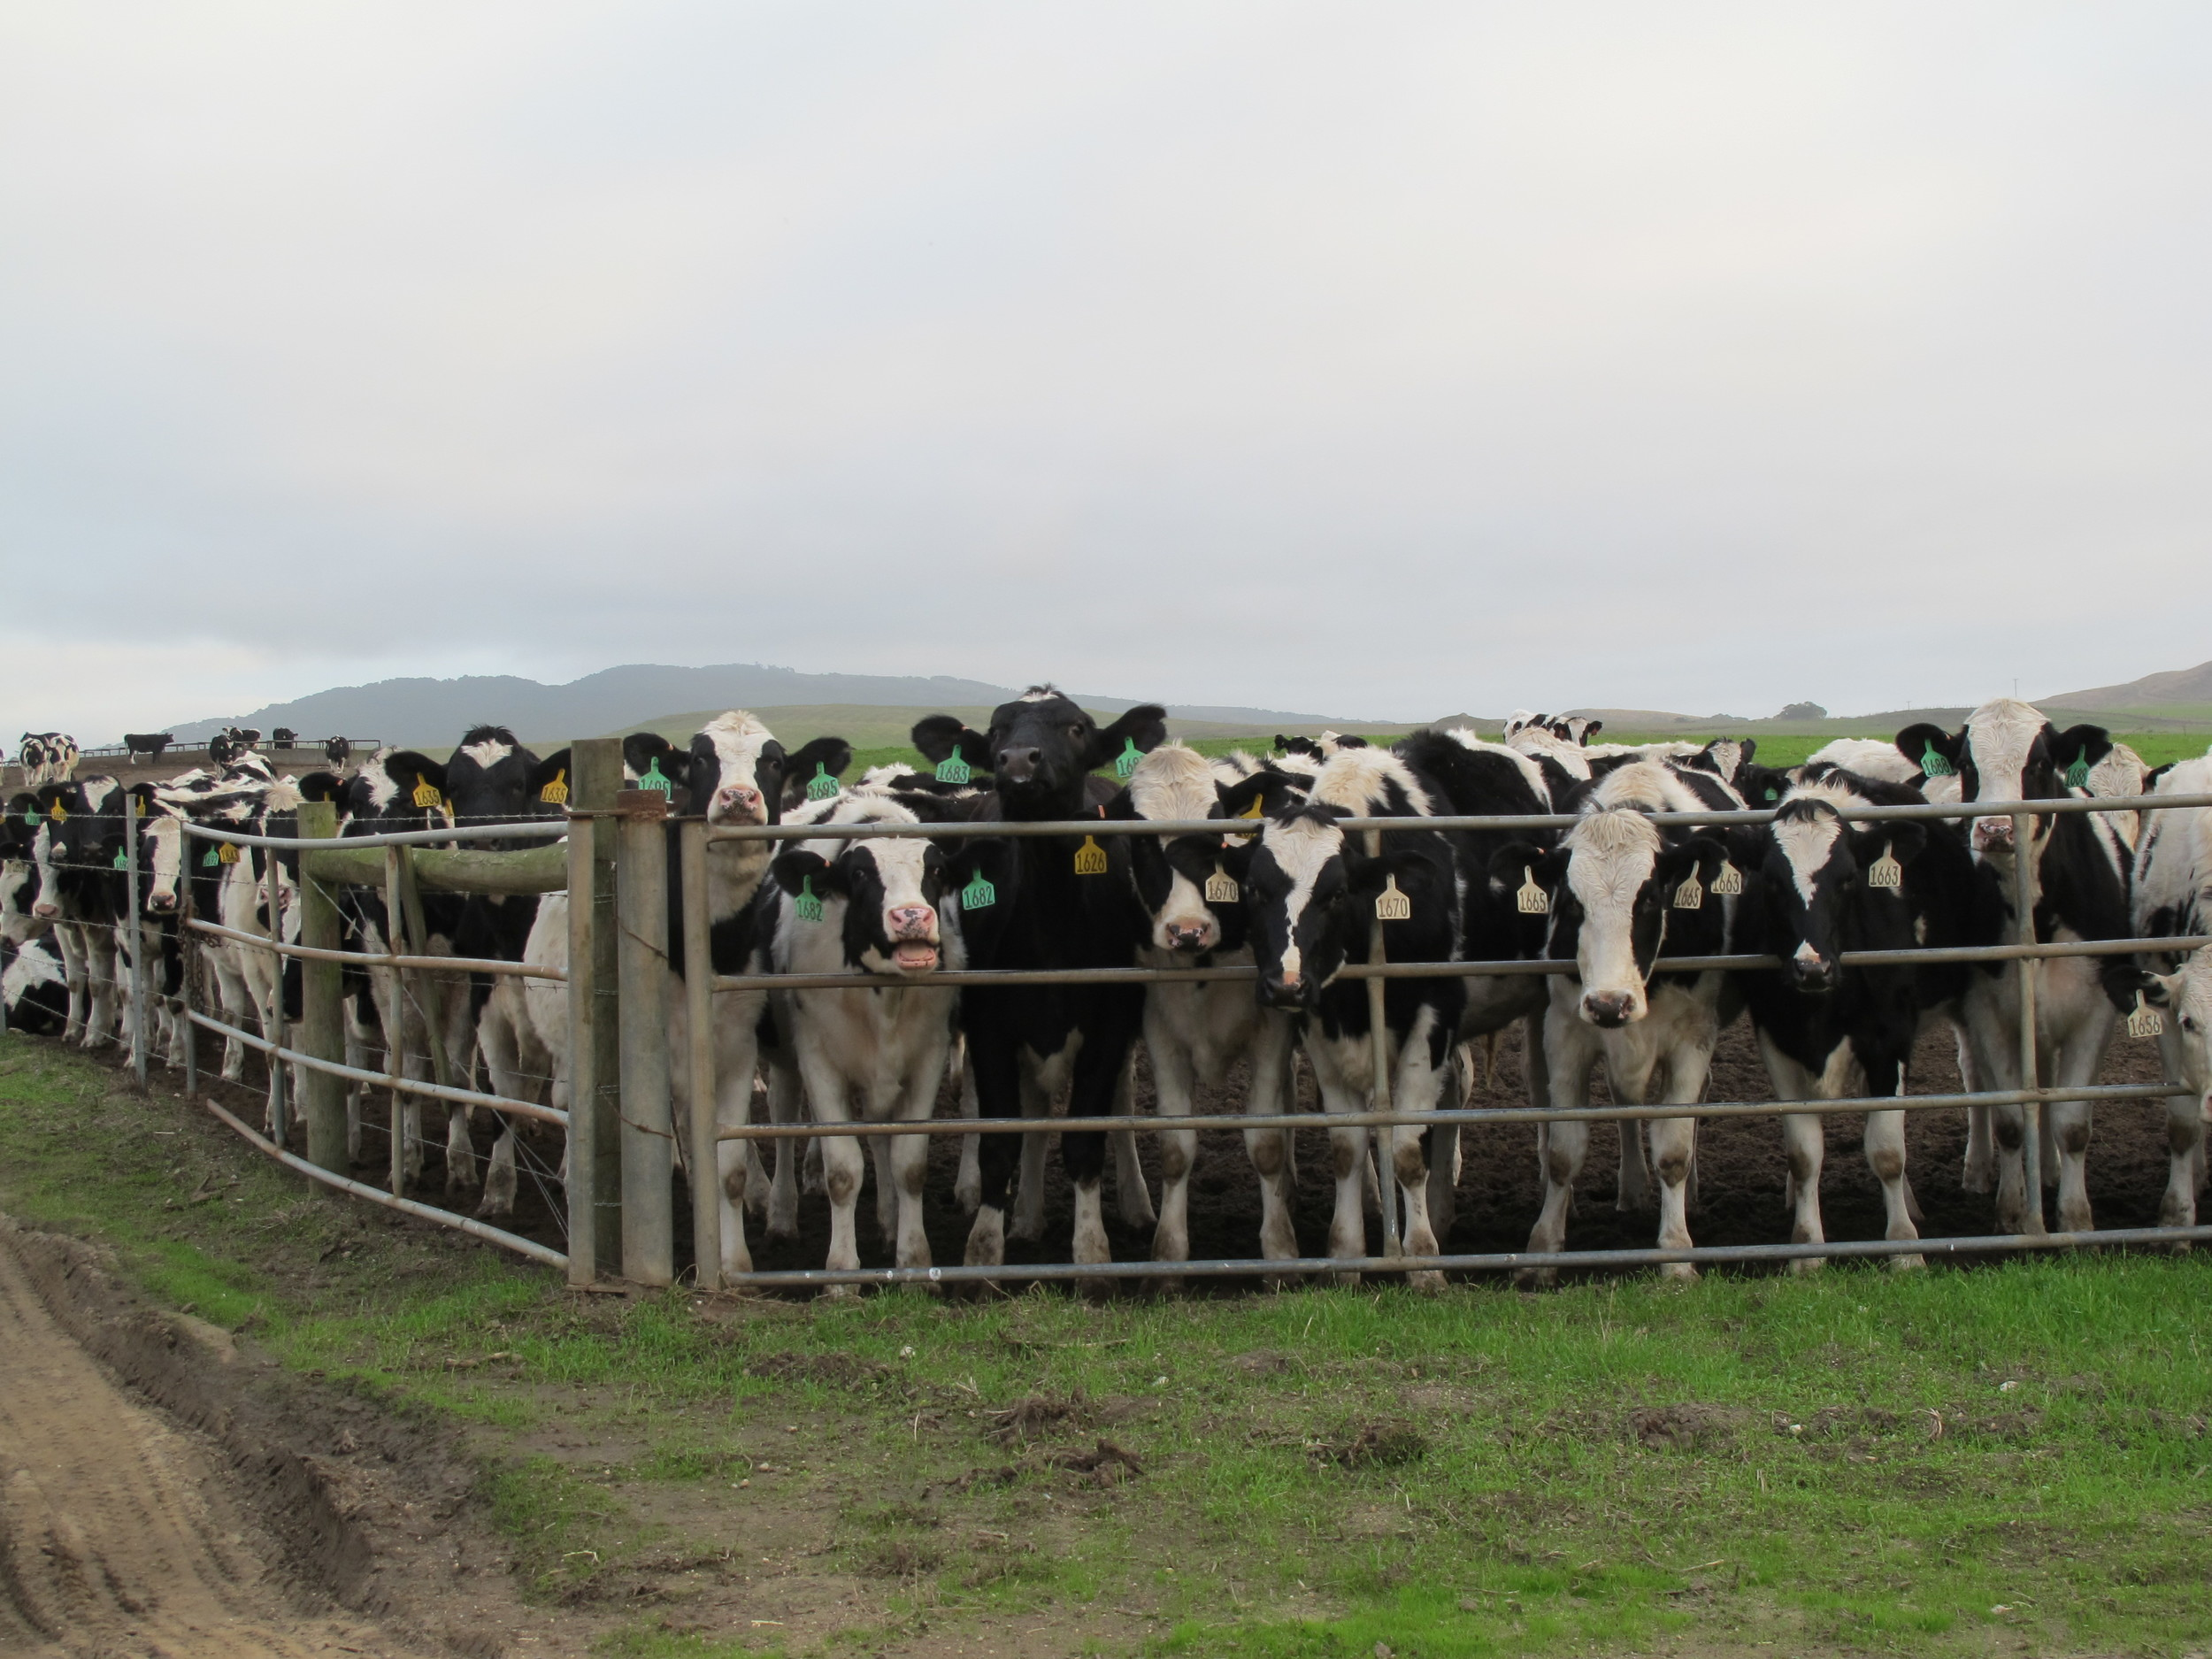 A dairy herd we passed in Point Reyes, California, on our birding trip.